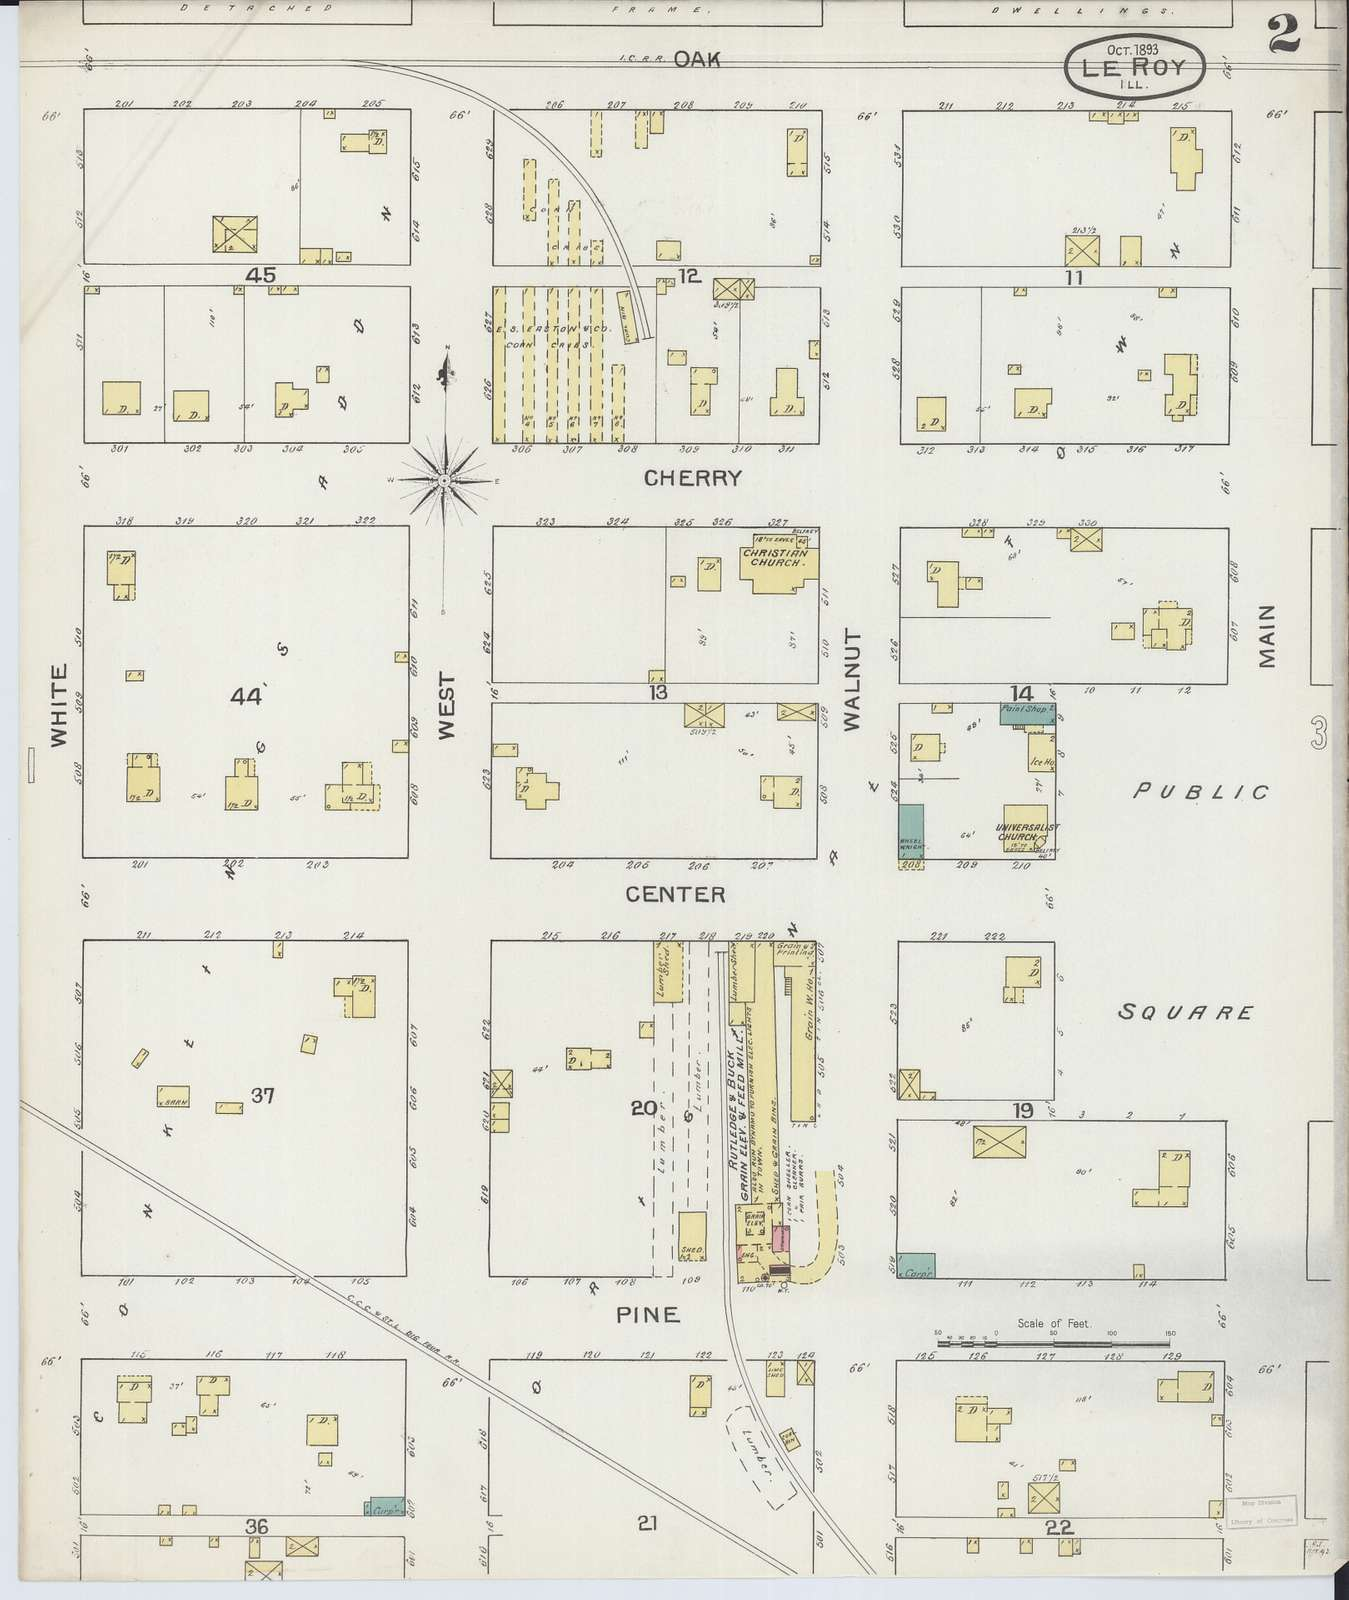 Sanborn Fire Insurance Map from Leroy, McLean County ...